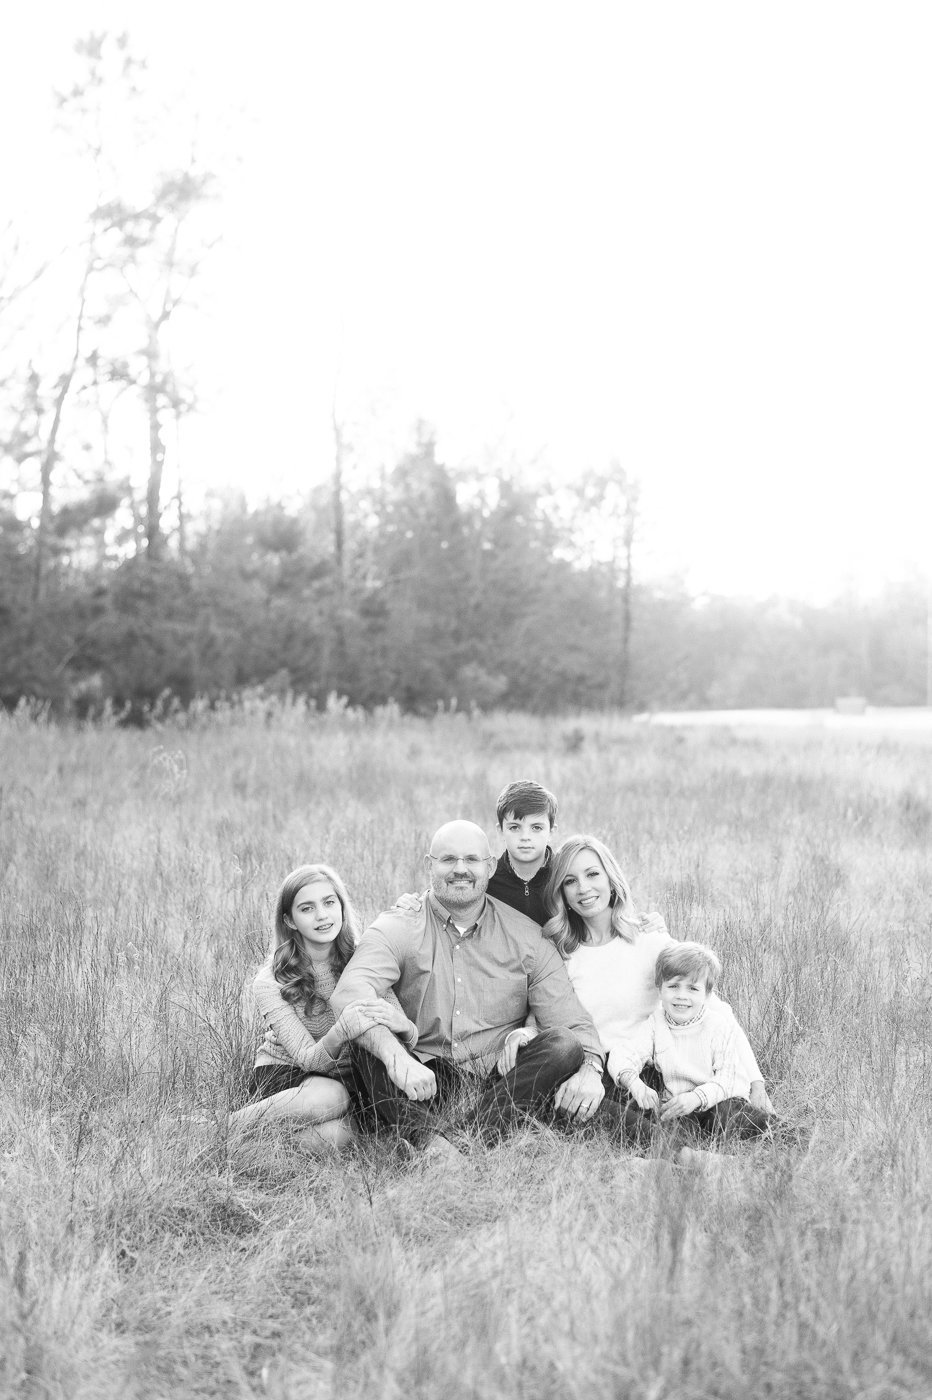 thewoodlands-family-portrait-photographer-23